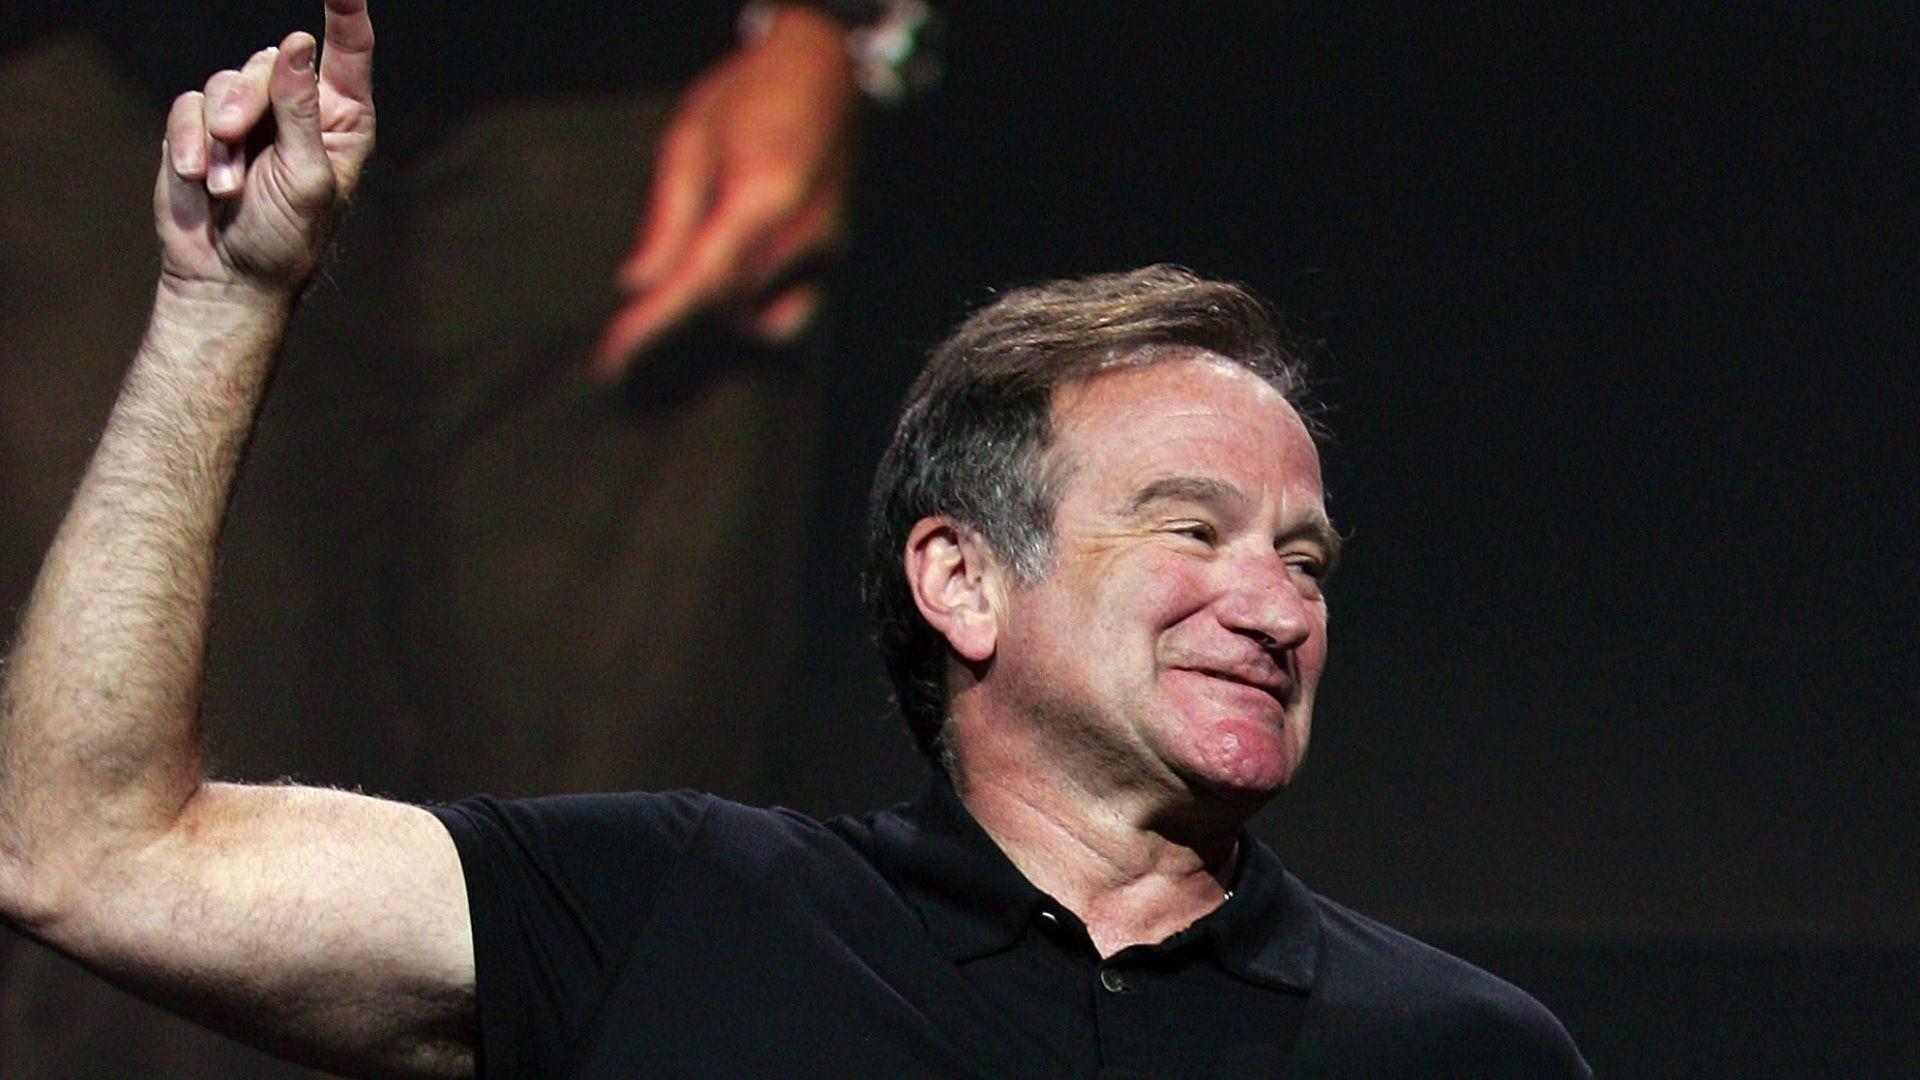 The famous Robin Williams shows his hand up wallpapers and image